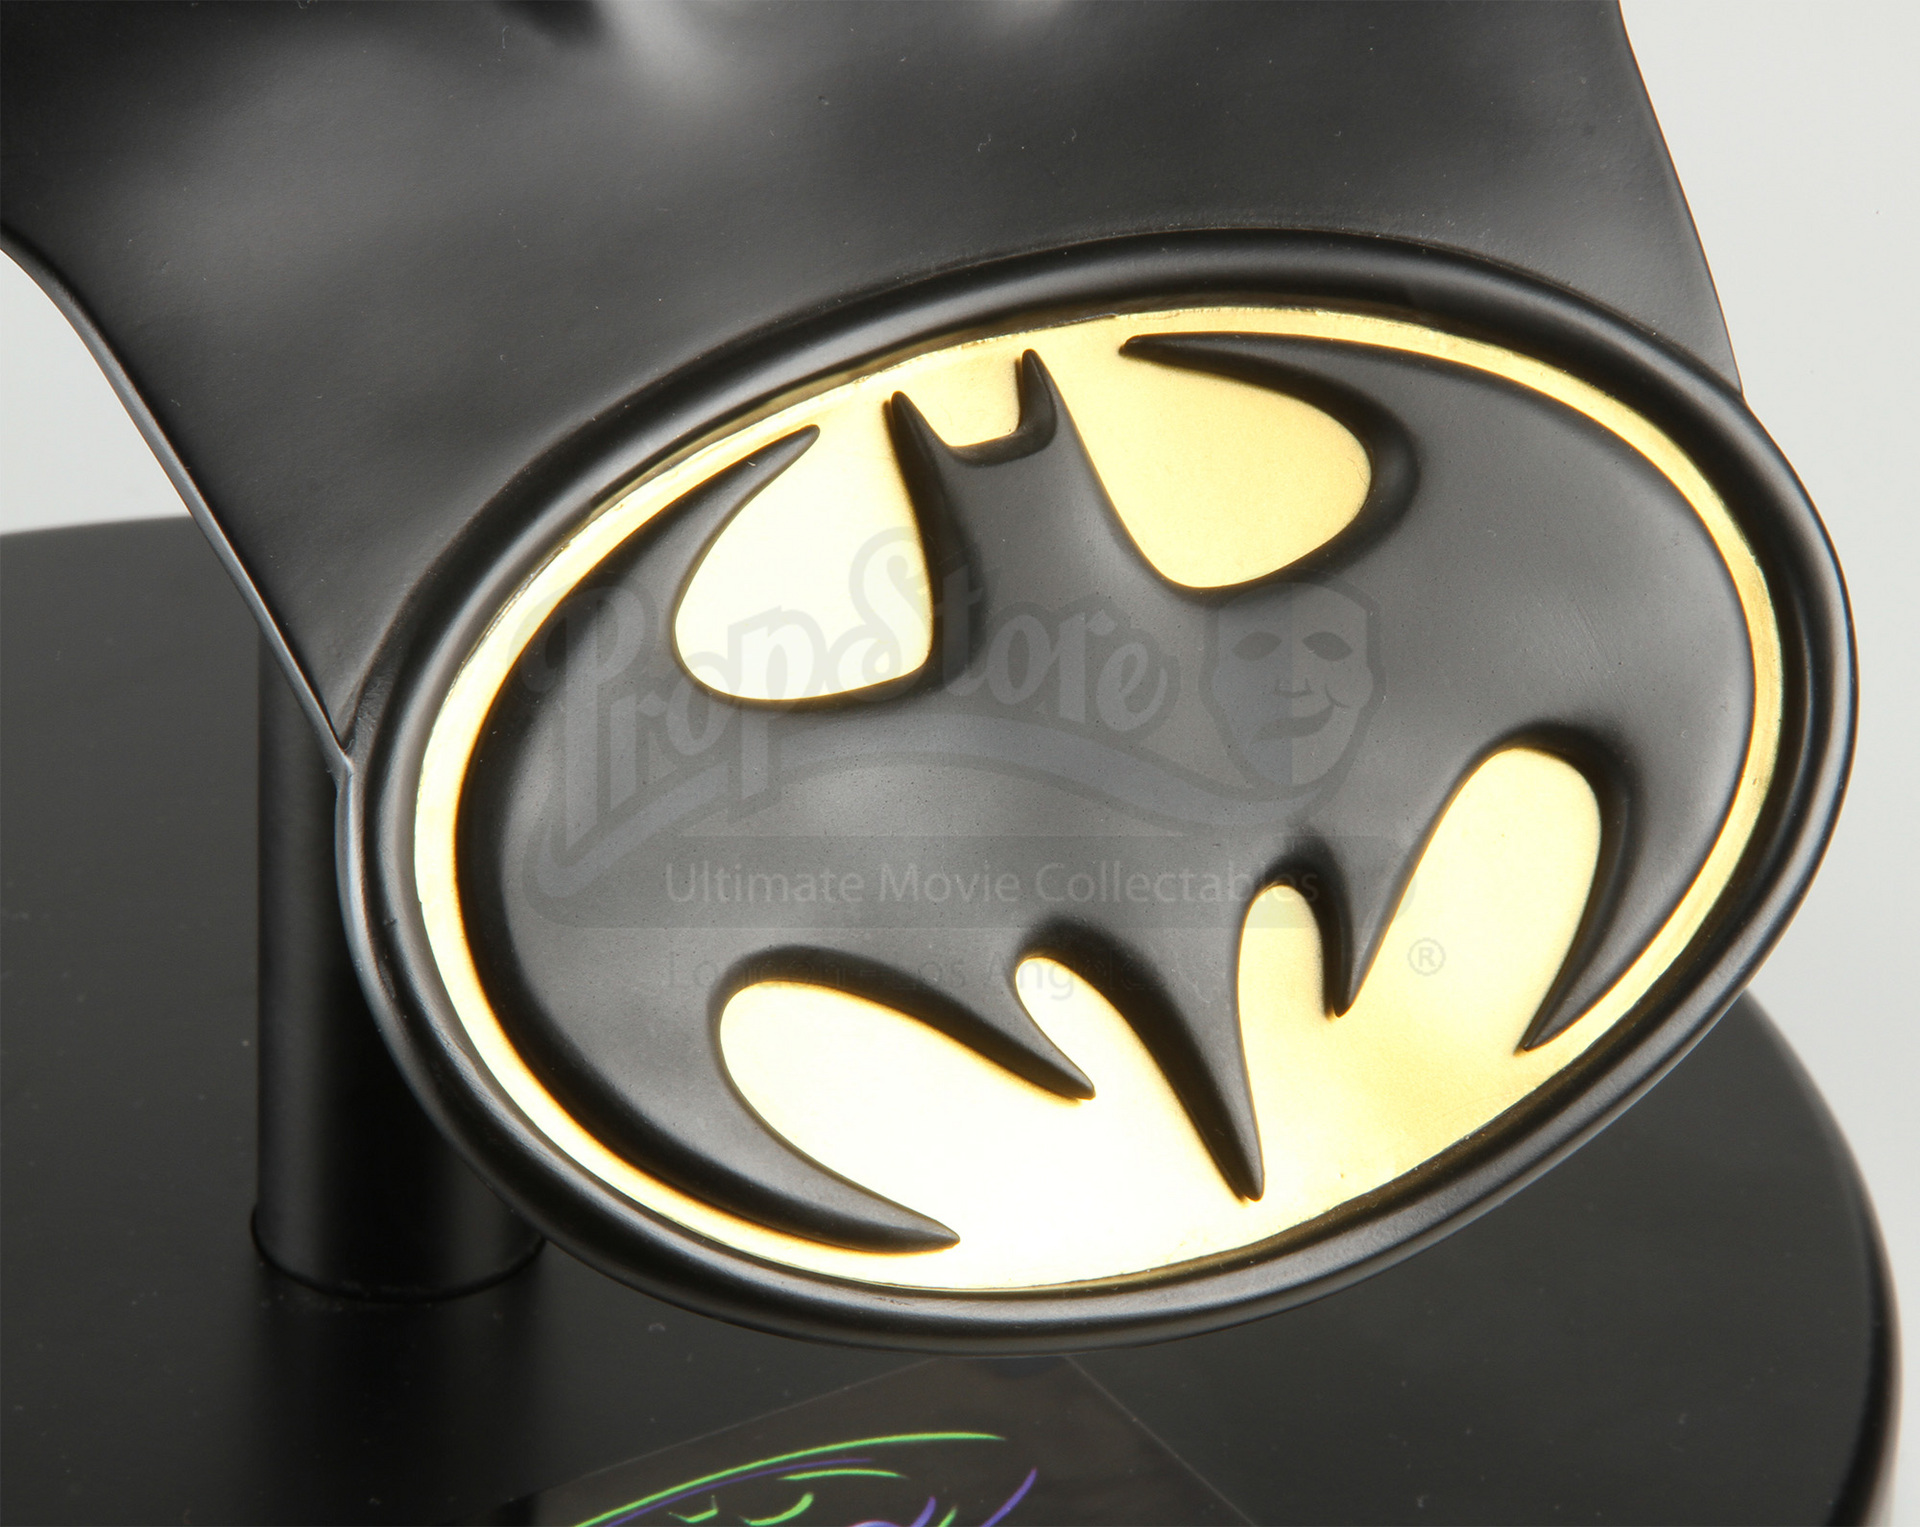 Limited Edition Replica Batcowl Display | Prop Store ...